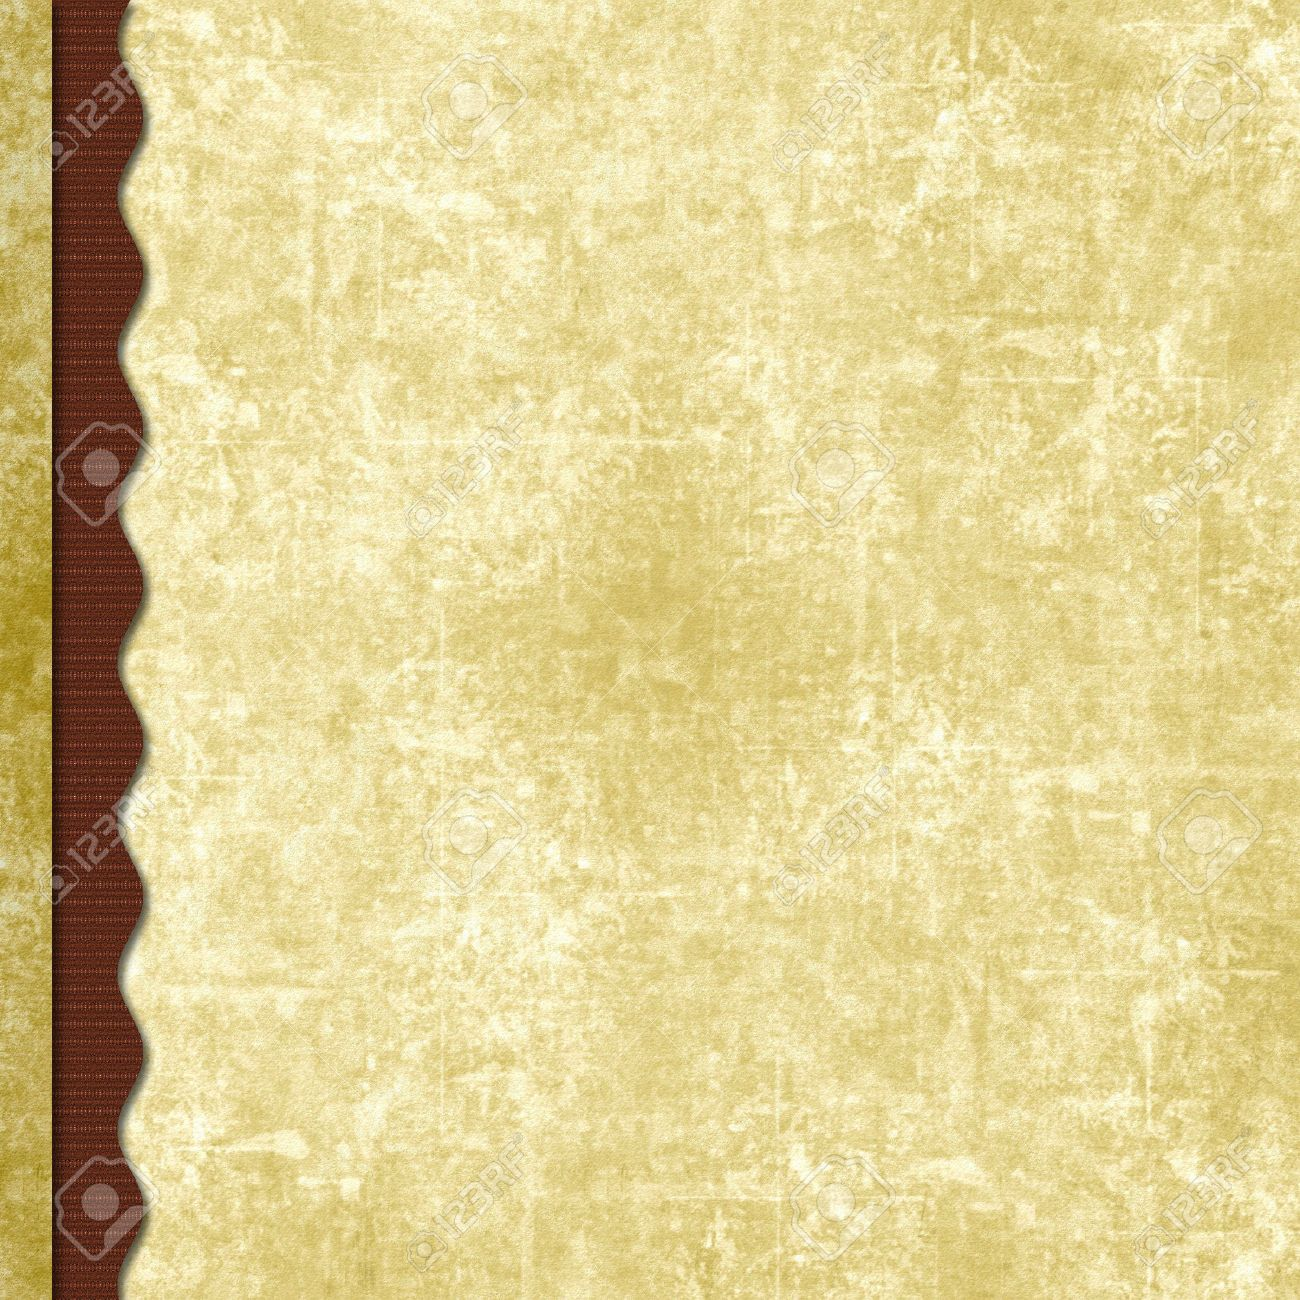 triple layered old antique paper scrapbook background with wavy